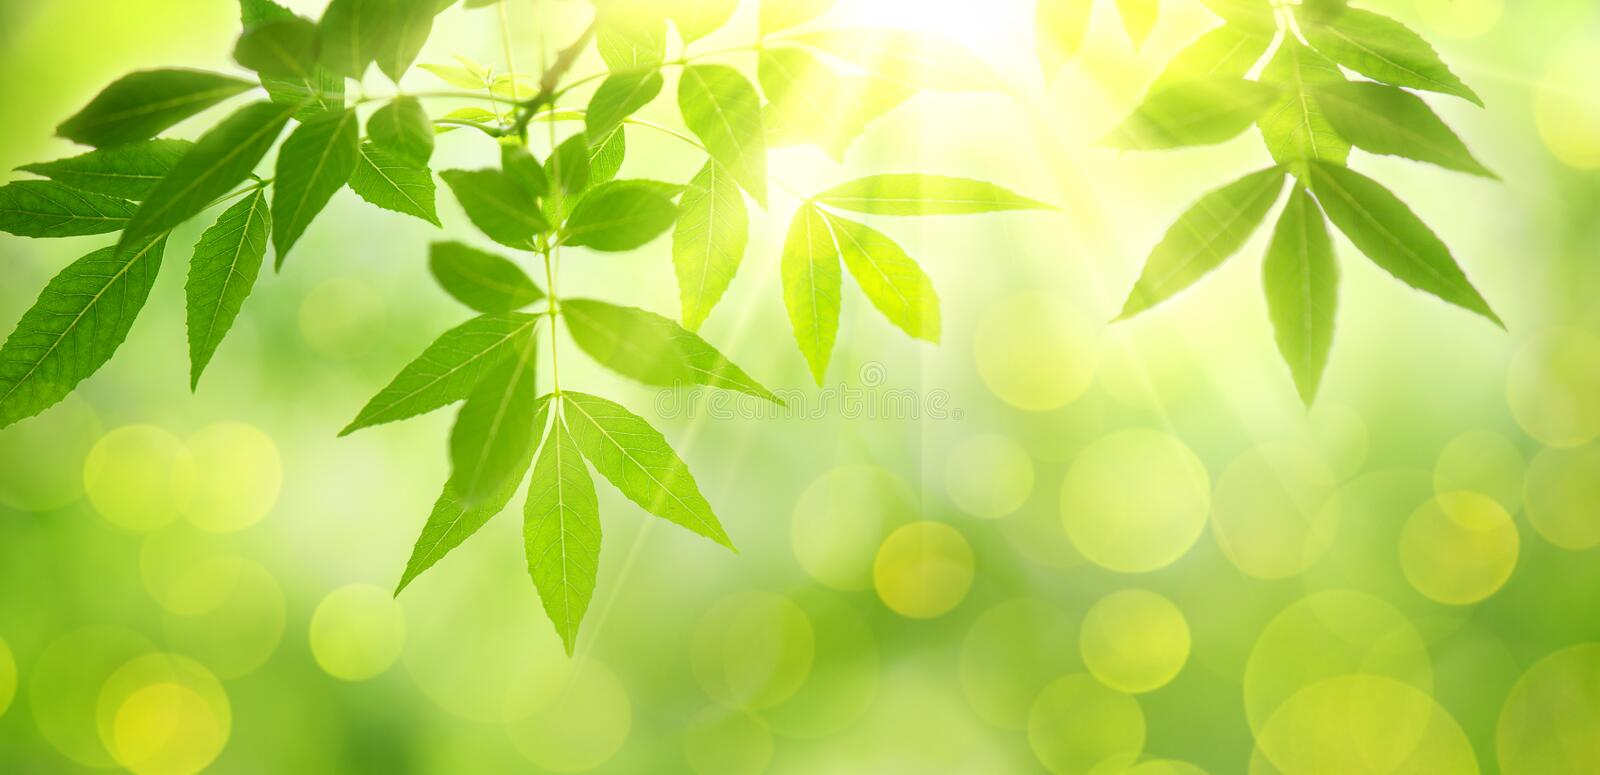 Fresh and green leaves royalty free stock image